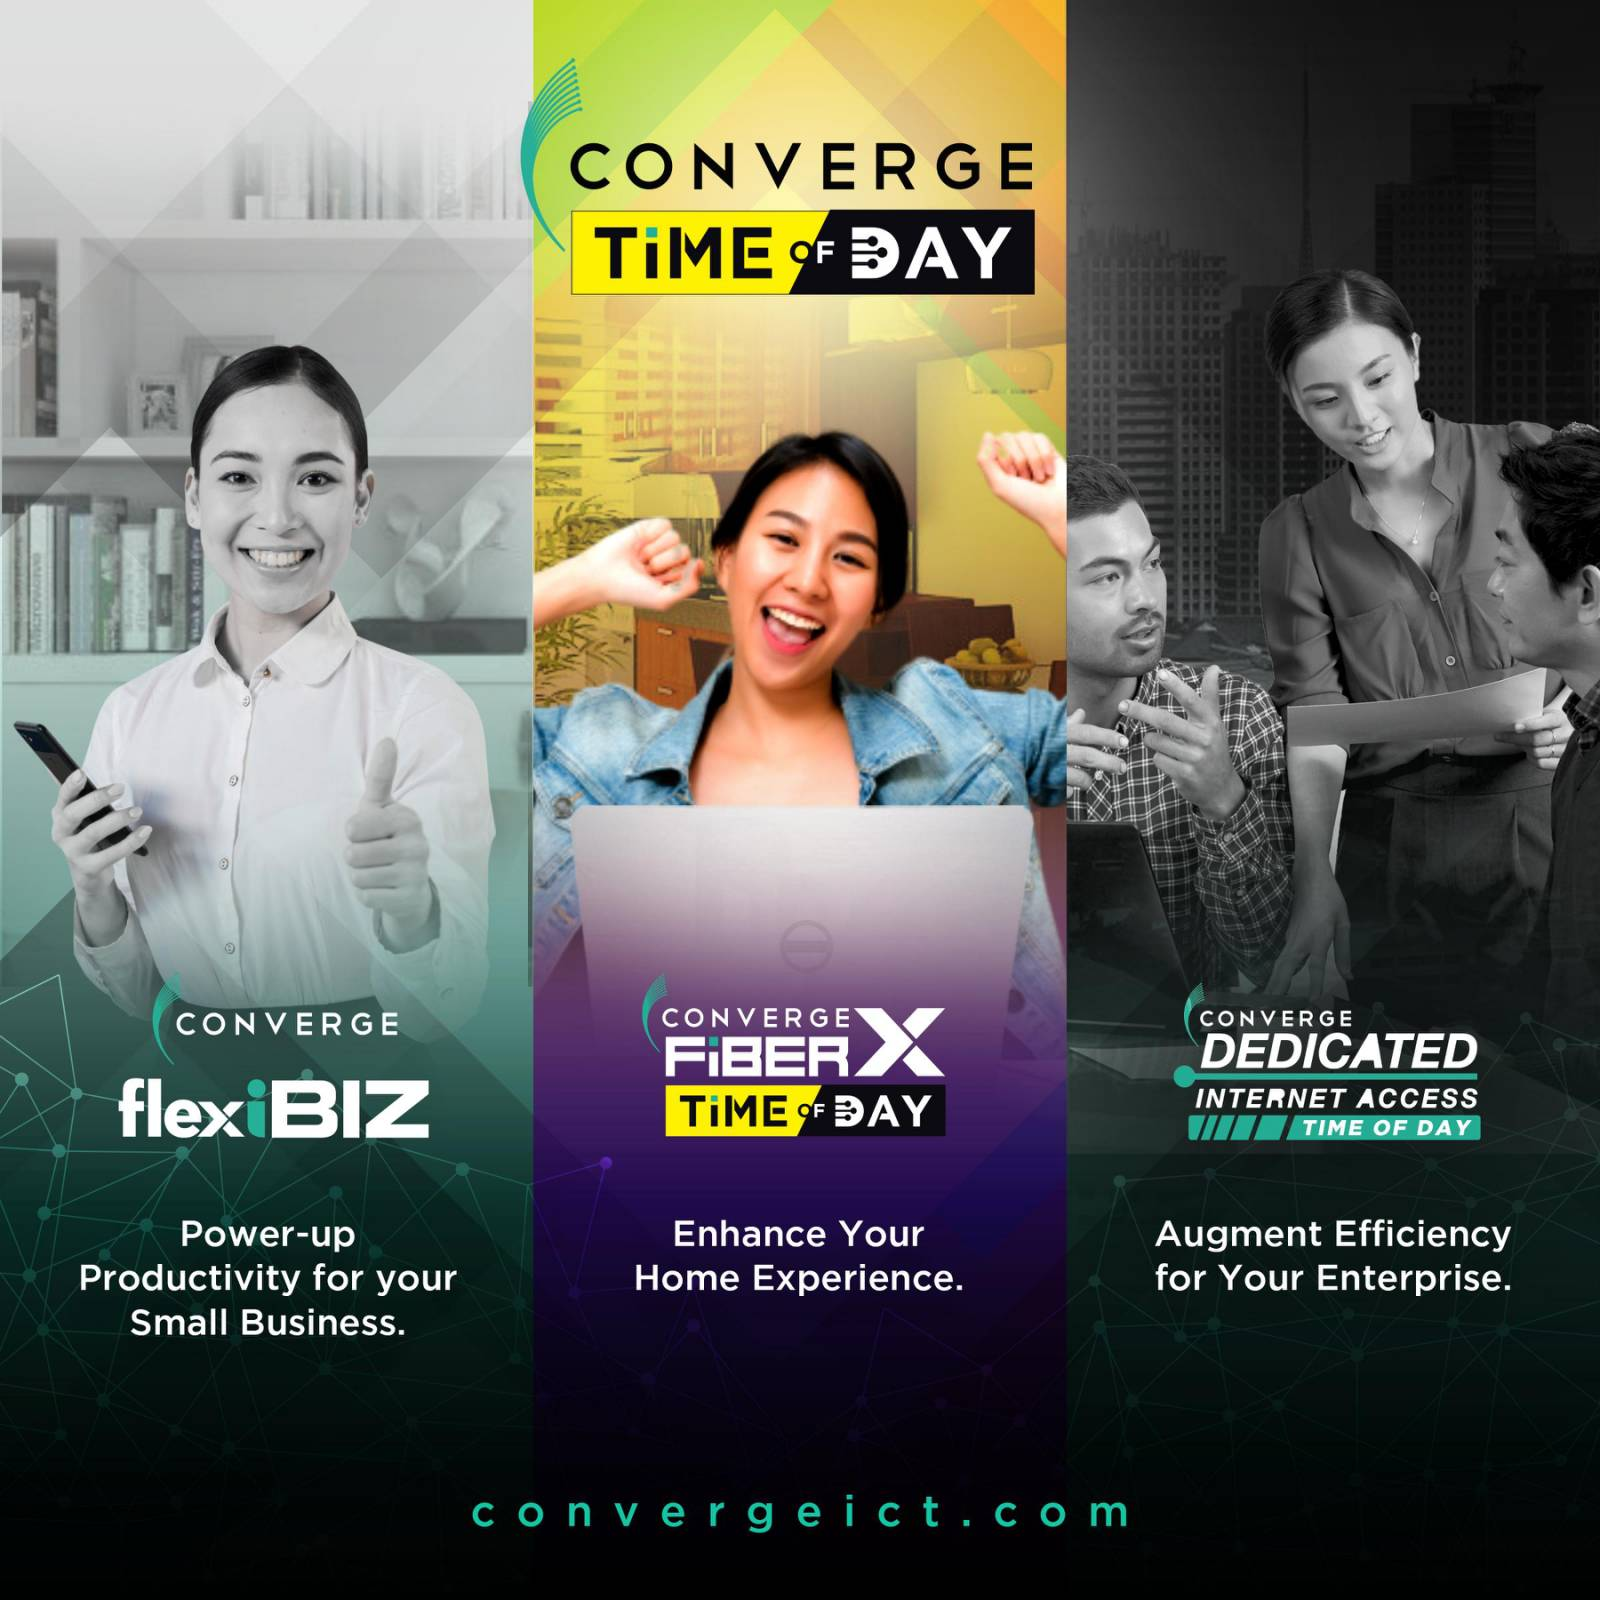 Converge ICT Time of Day provides customizable internet plans for both businesses & residential customers